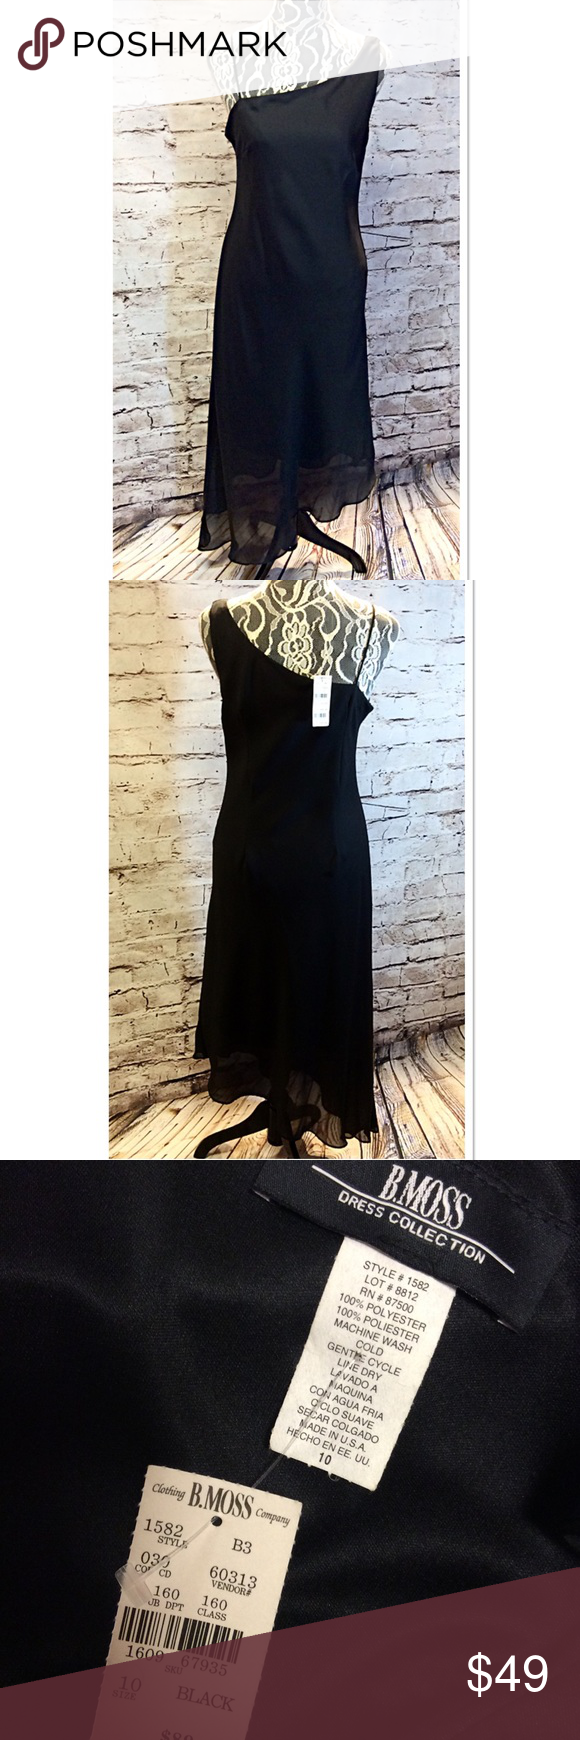 NWT B. MOSS 1 SHOULDER ASYMMETRICAL LITTLE BLACK Beautiful dress NWT in black. Asymmetrical hem with a wide shoulder strap on one side and a spaghetti strap on the other. Very classy and elegant for many occasions B. MOSS Dresses Asymmetrical